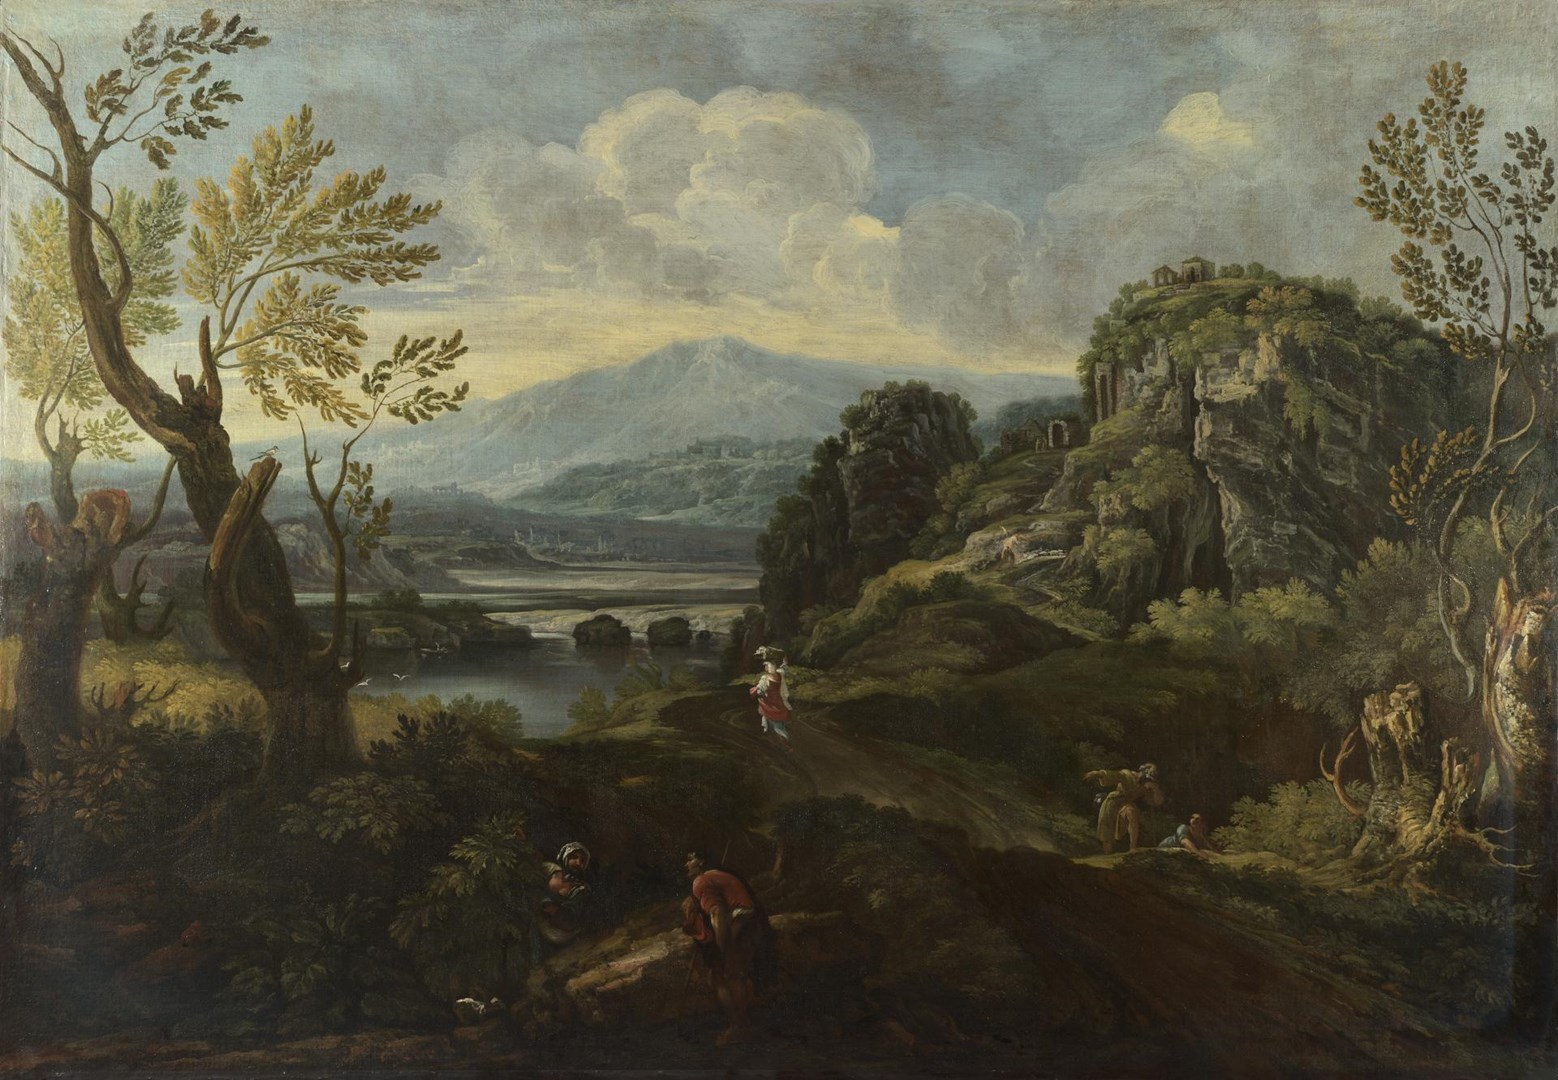 Landscape with Figures by Probably by Crescenzio Onofri